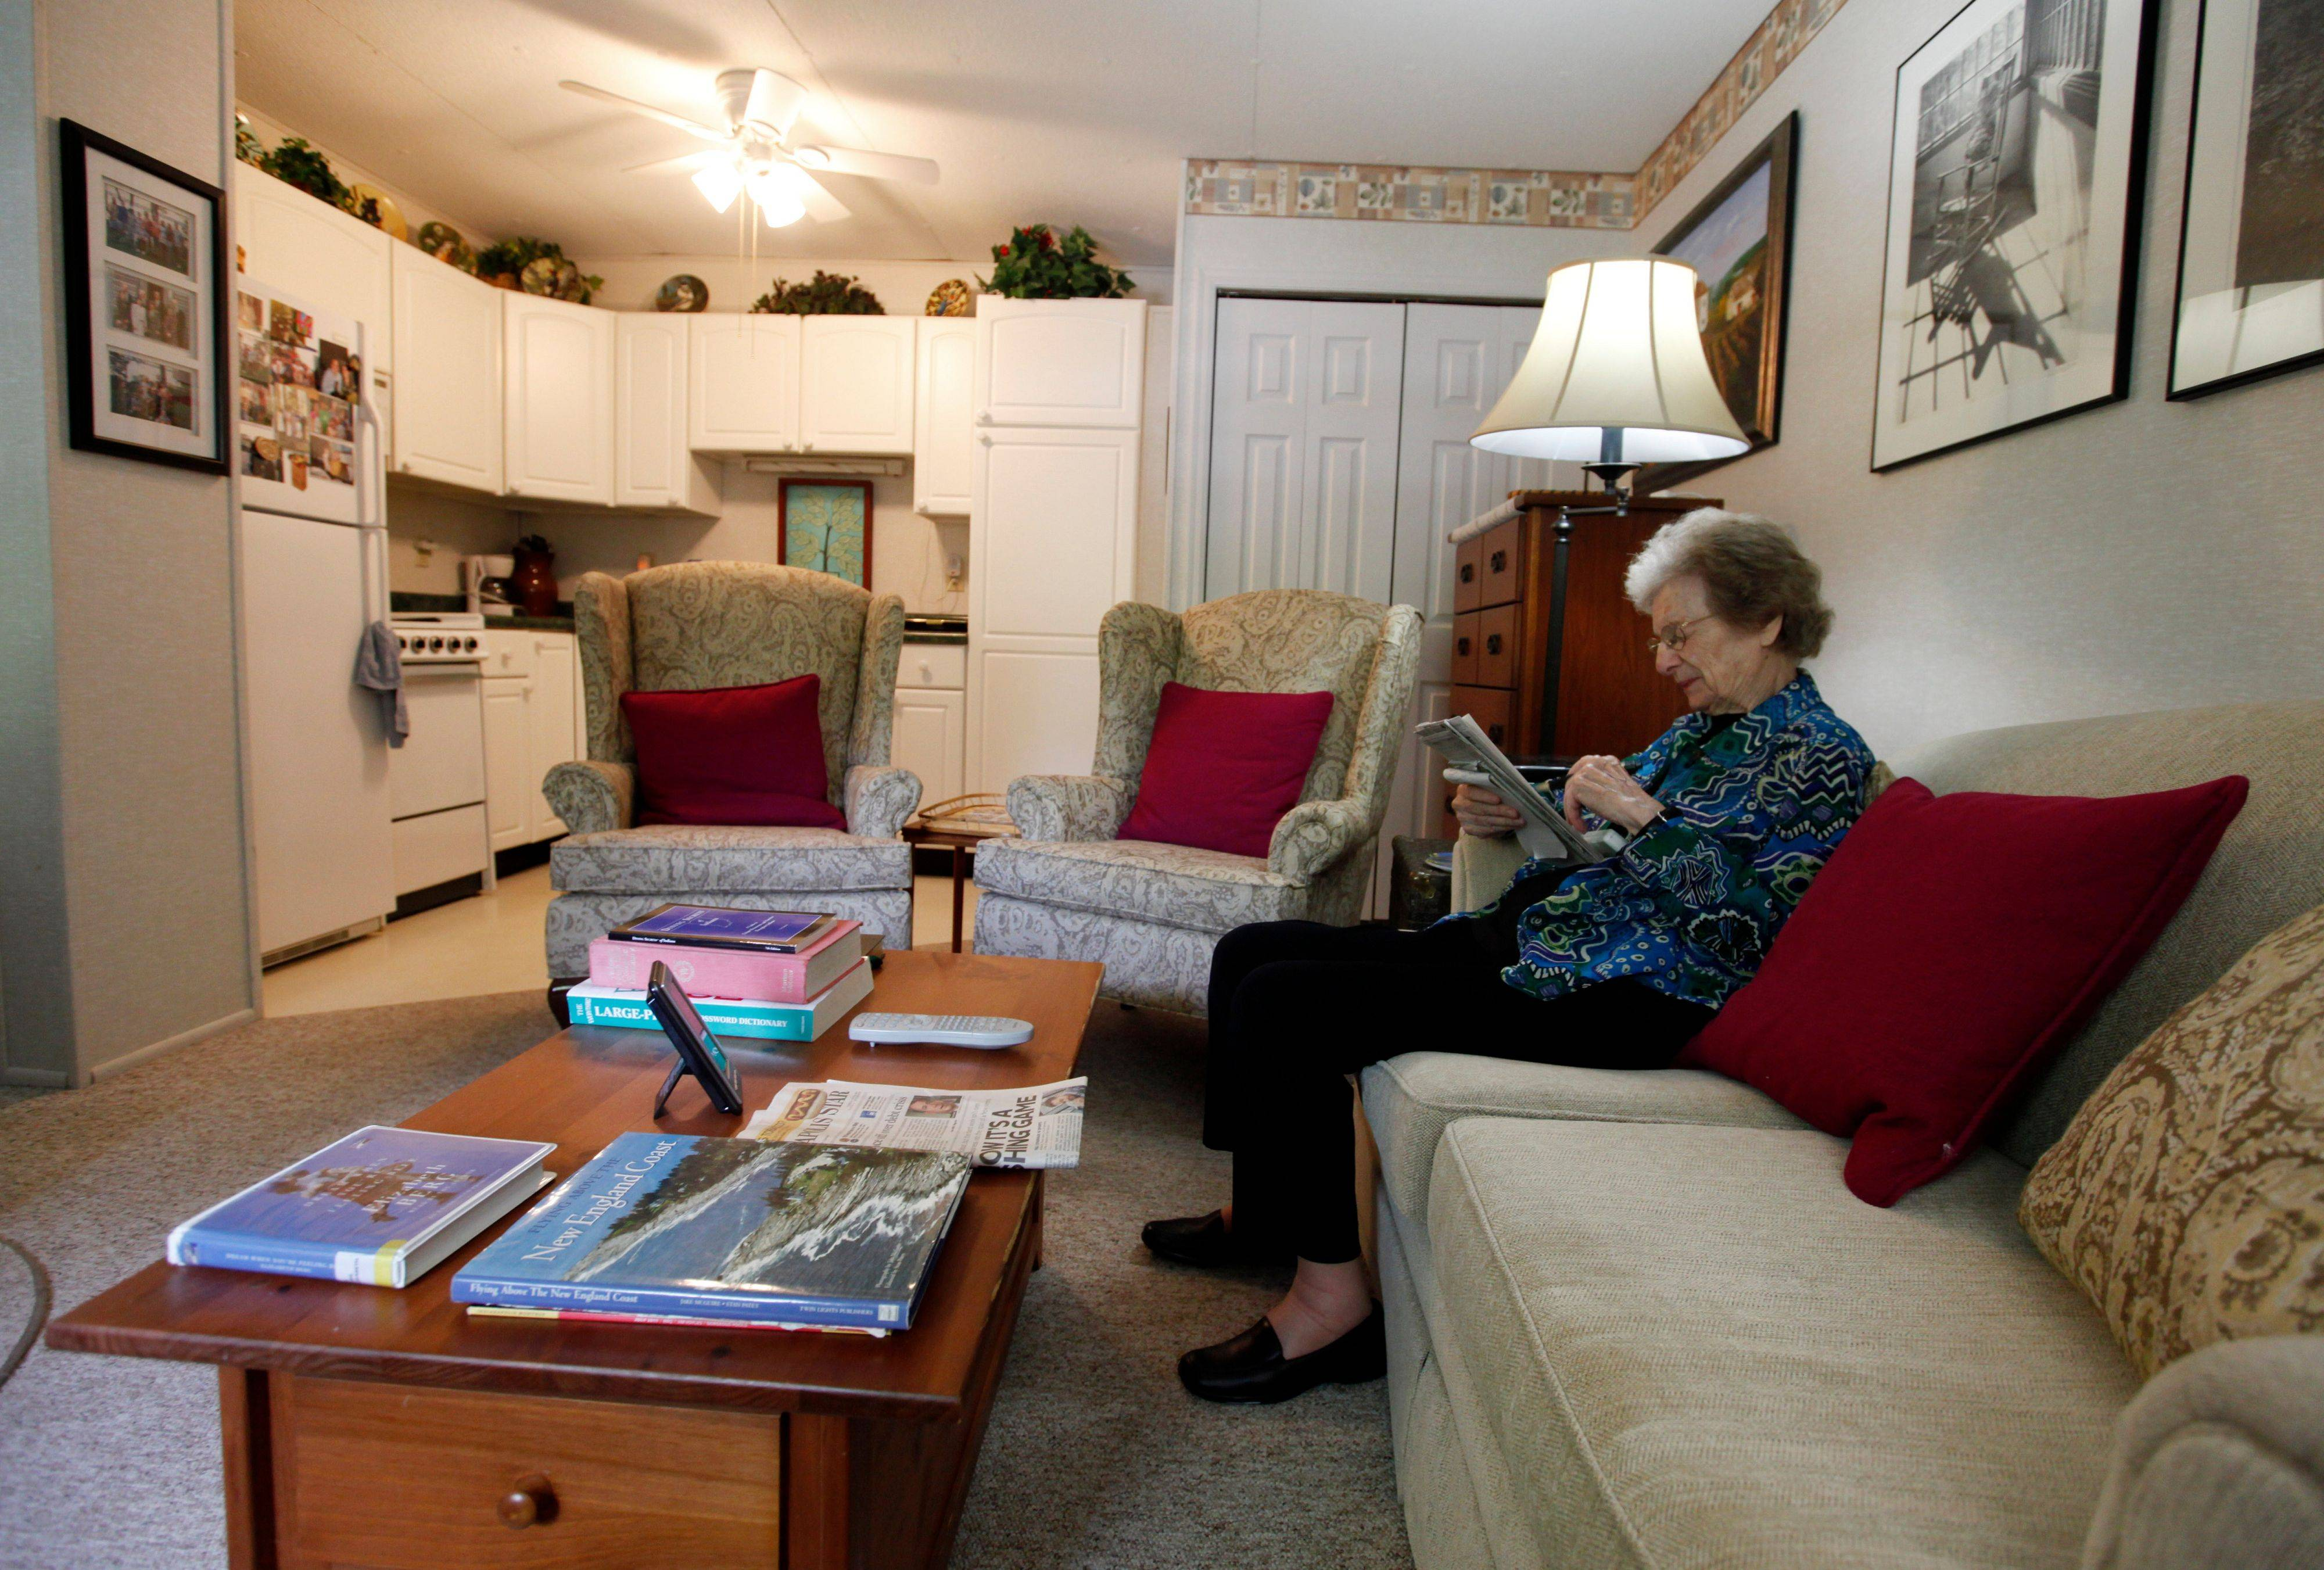 Jane Merrill works a crossword puzzle in her �apartment� in the home of her son, William Merrill, in Carmel, Ind. The Merrill family had their two-car garage renovated to create a mother-in-law suite for Jane.